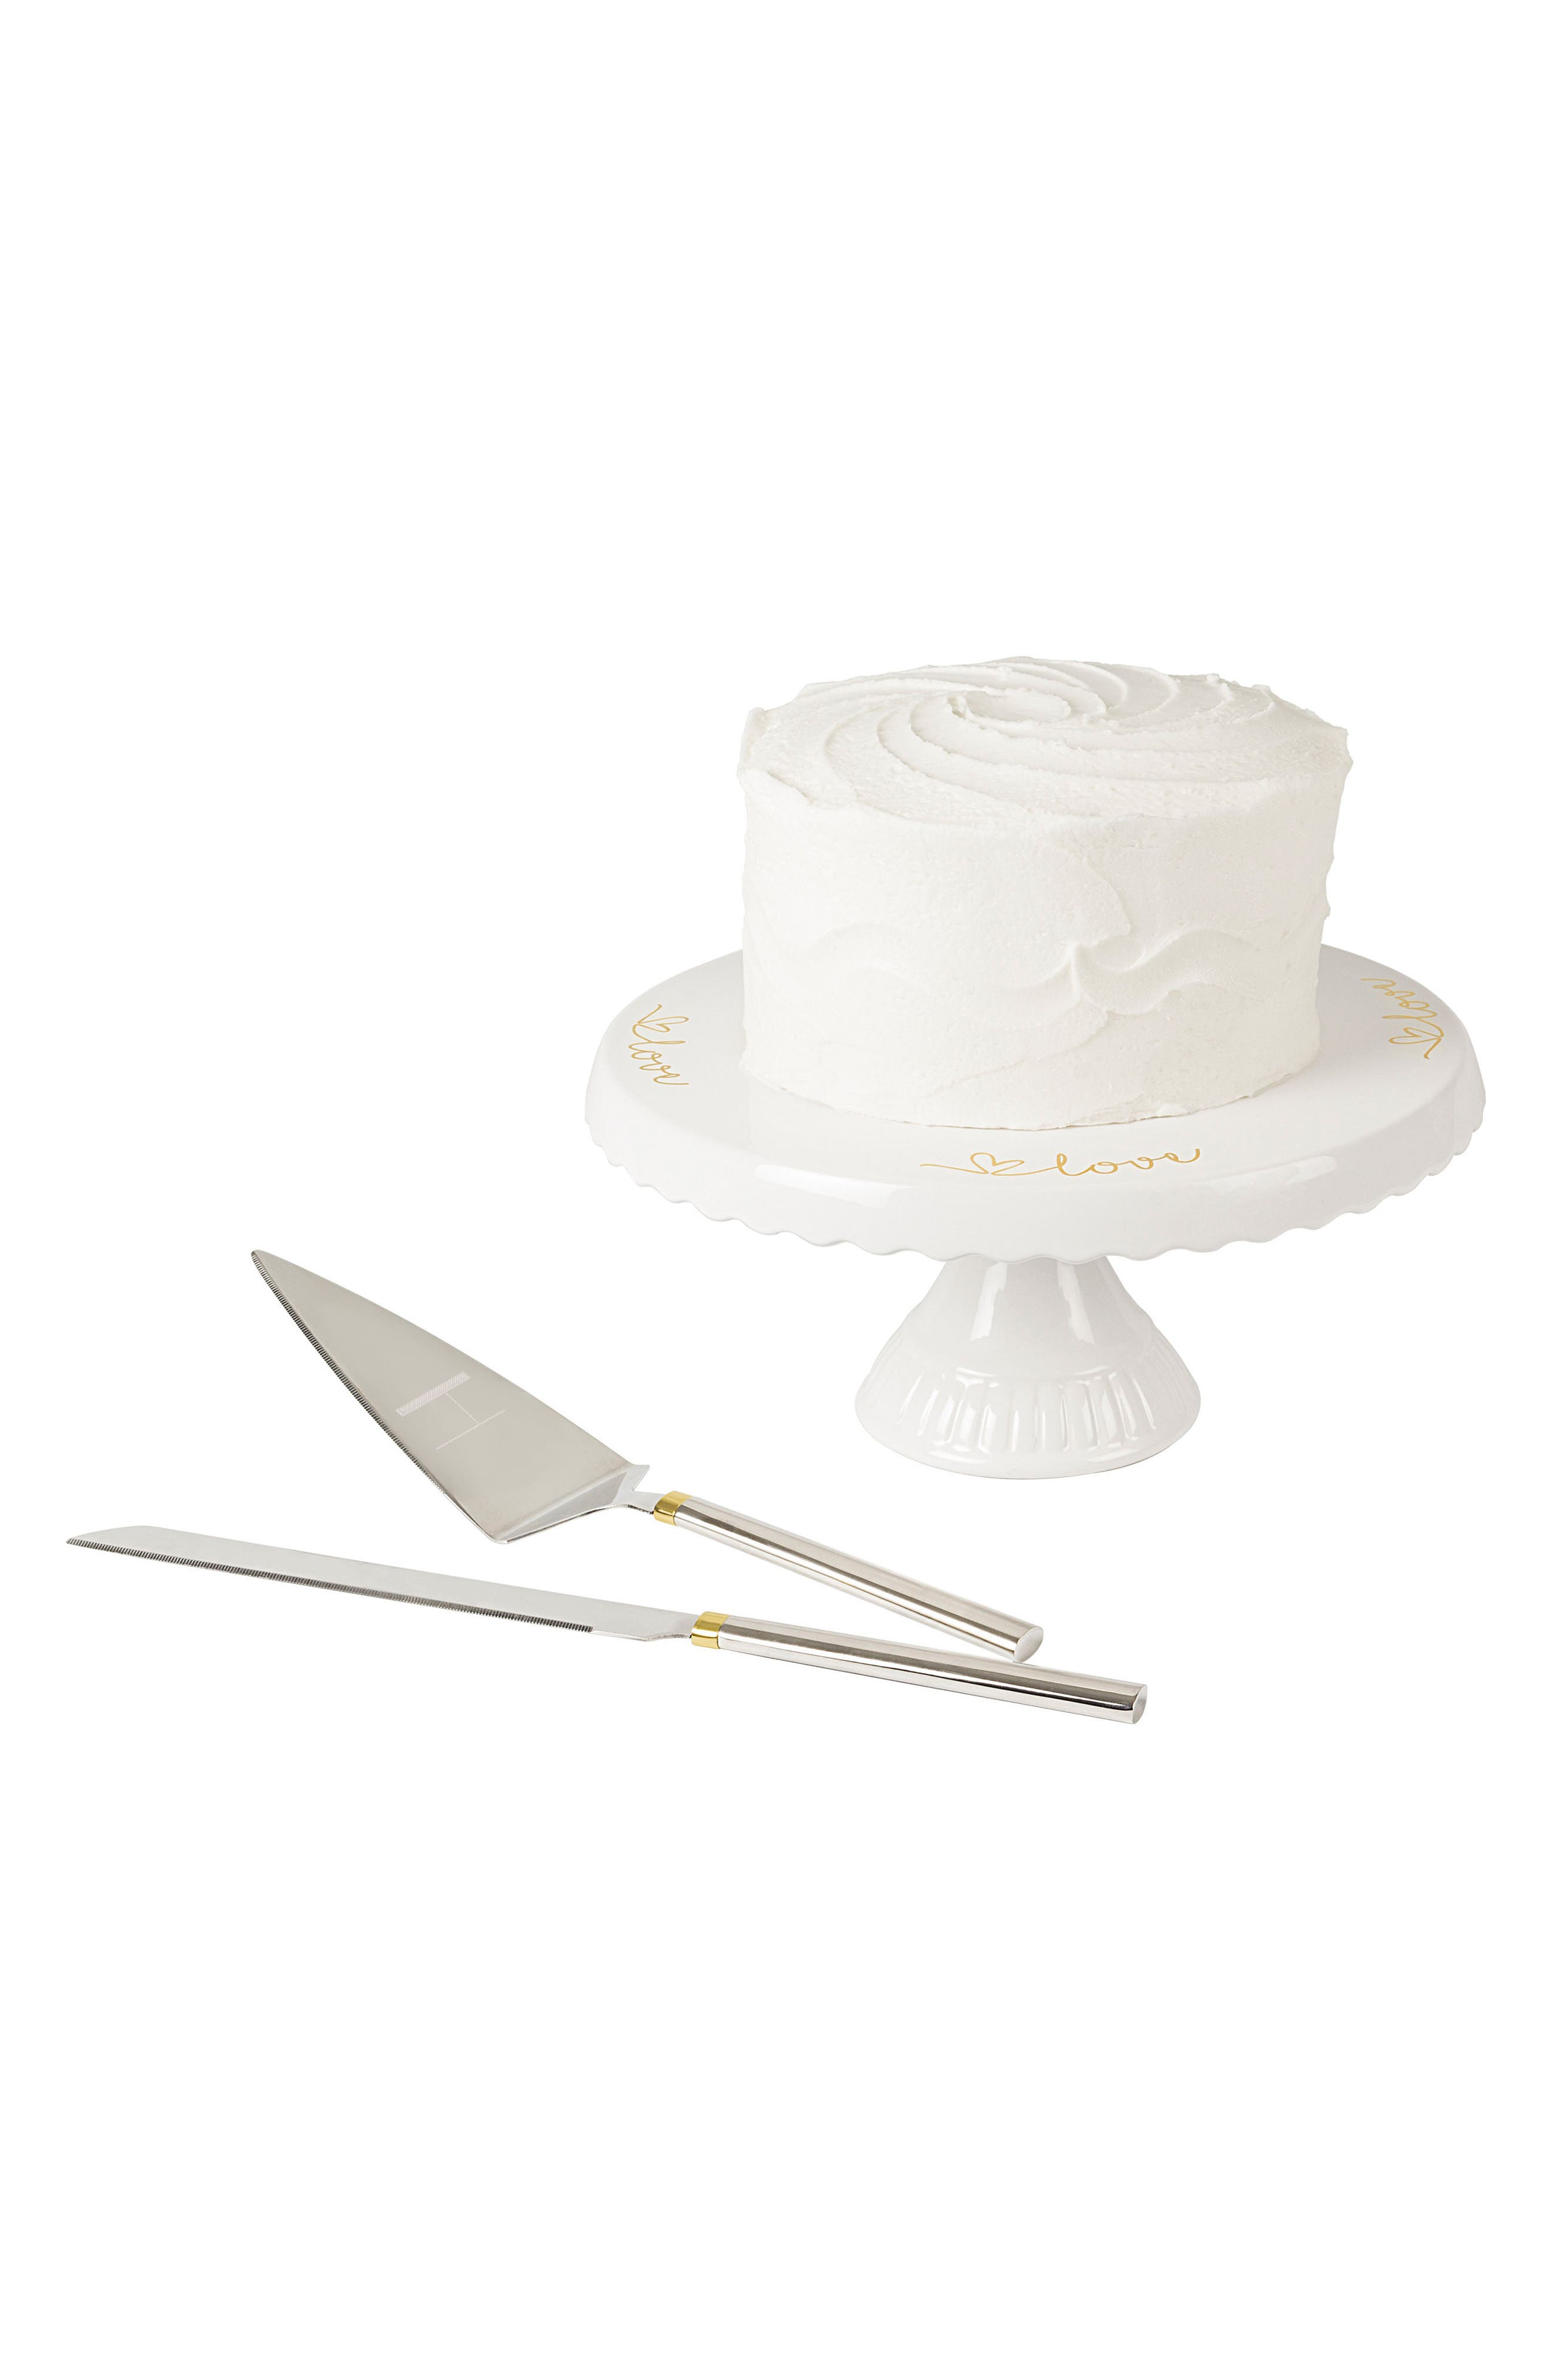 Love Monogram Cake Stand & Server Set,                             Main thumbnail 9, color,